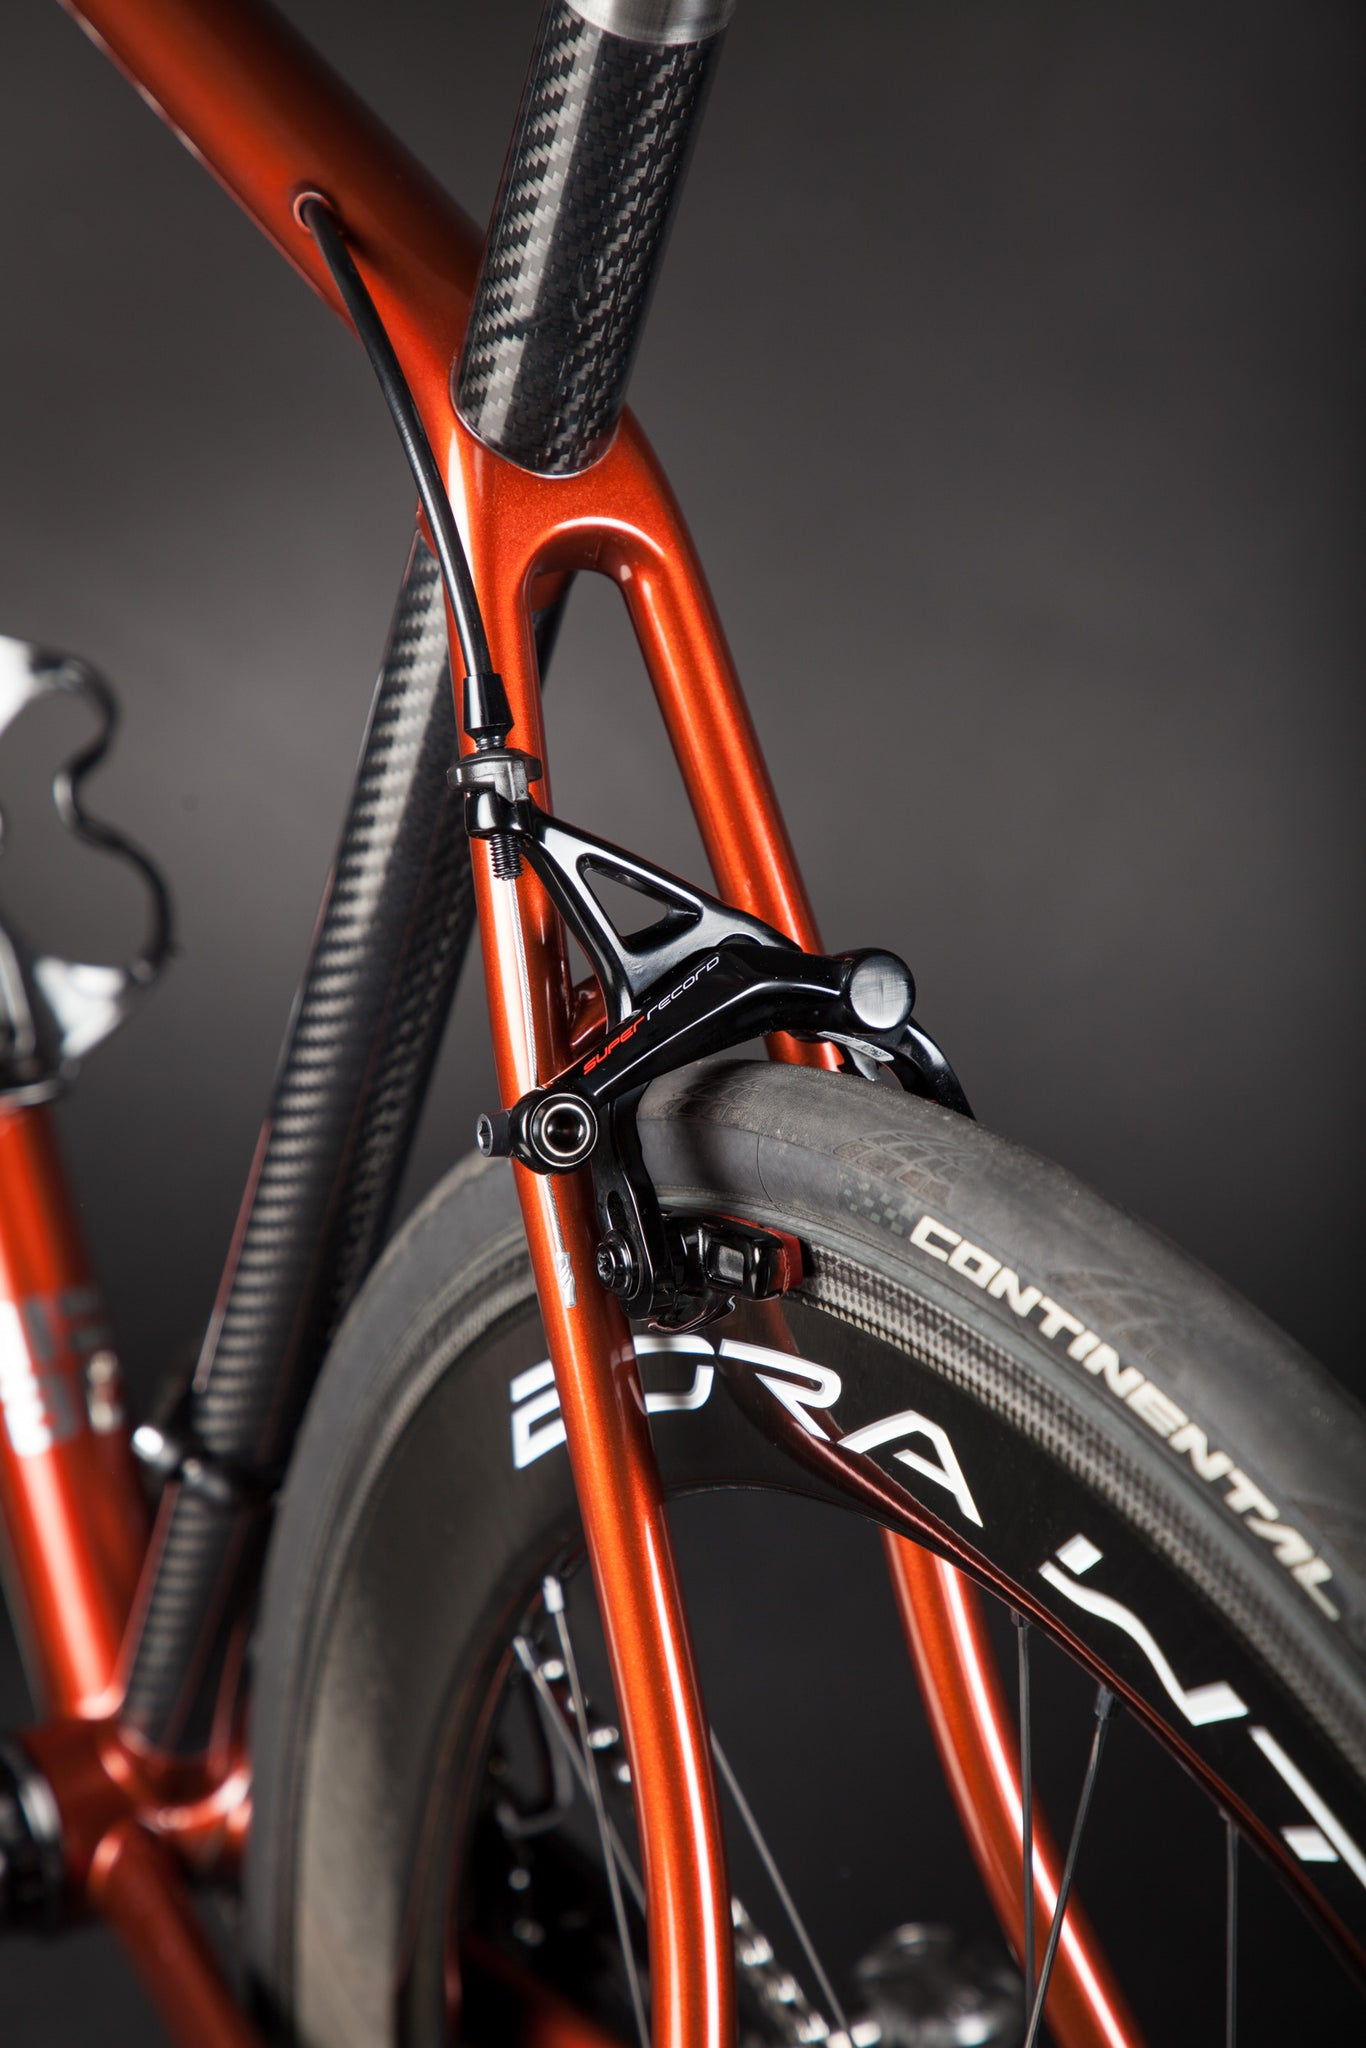 chad's prova speciale brake bridge